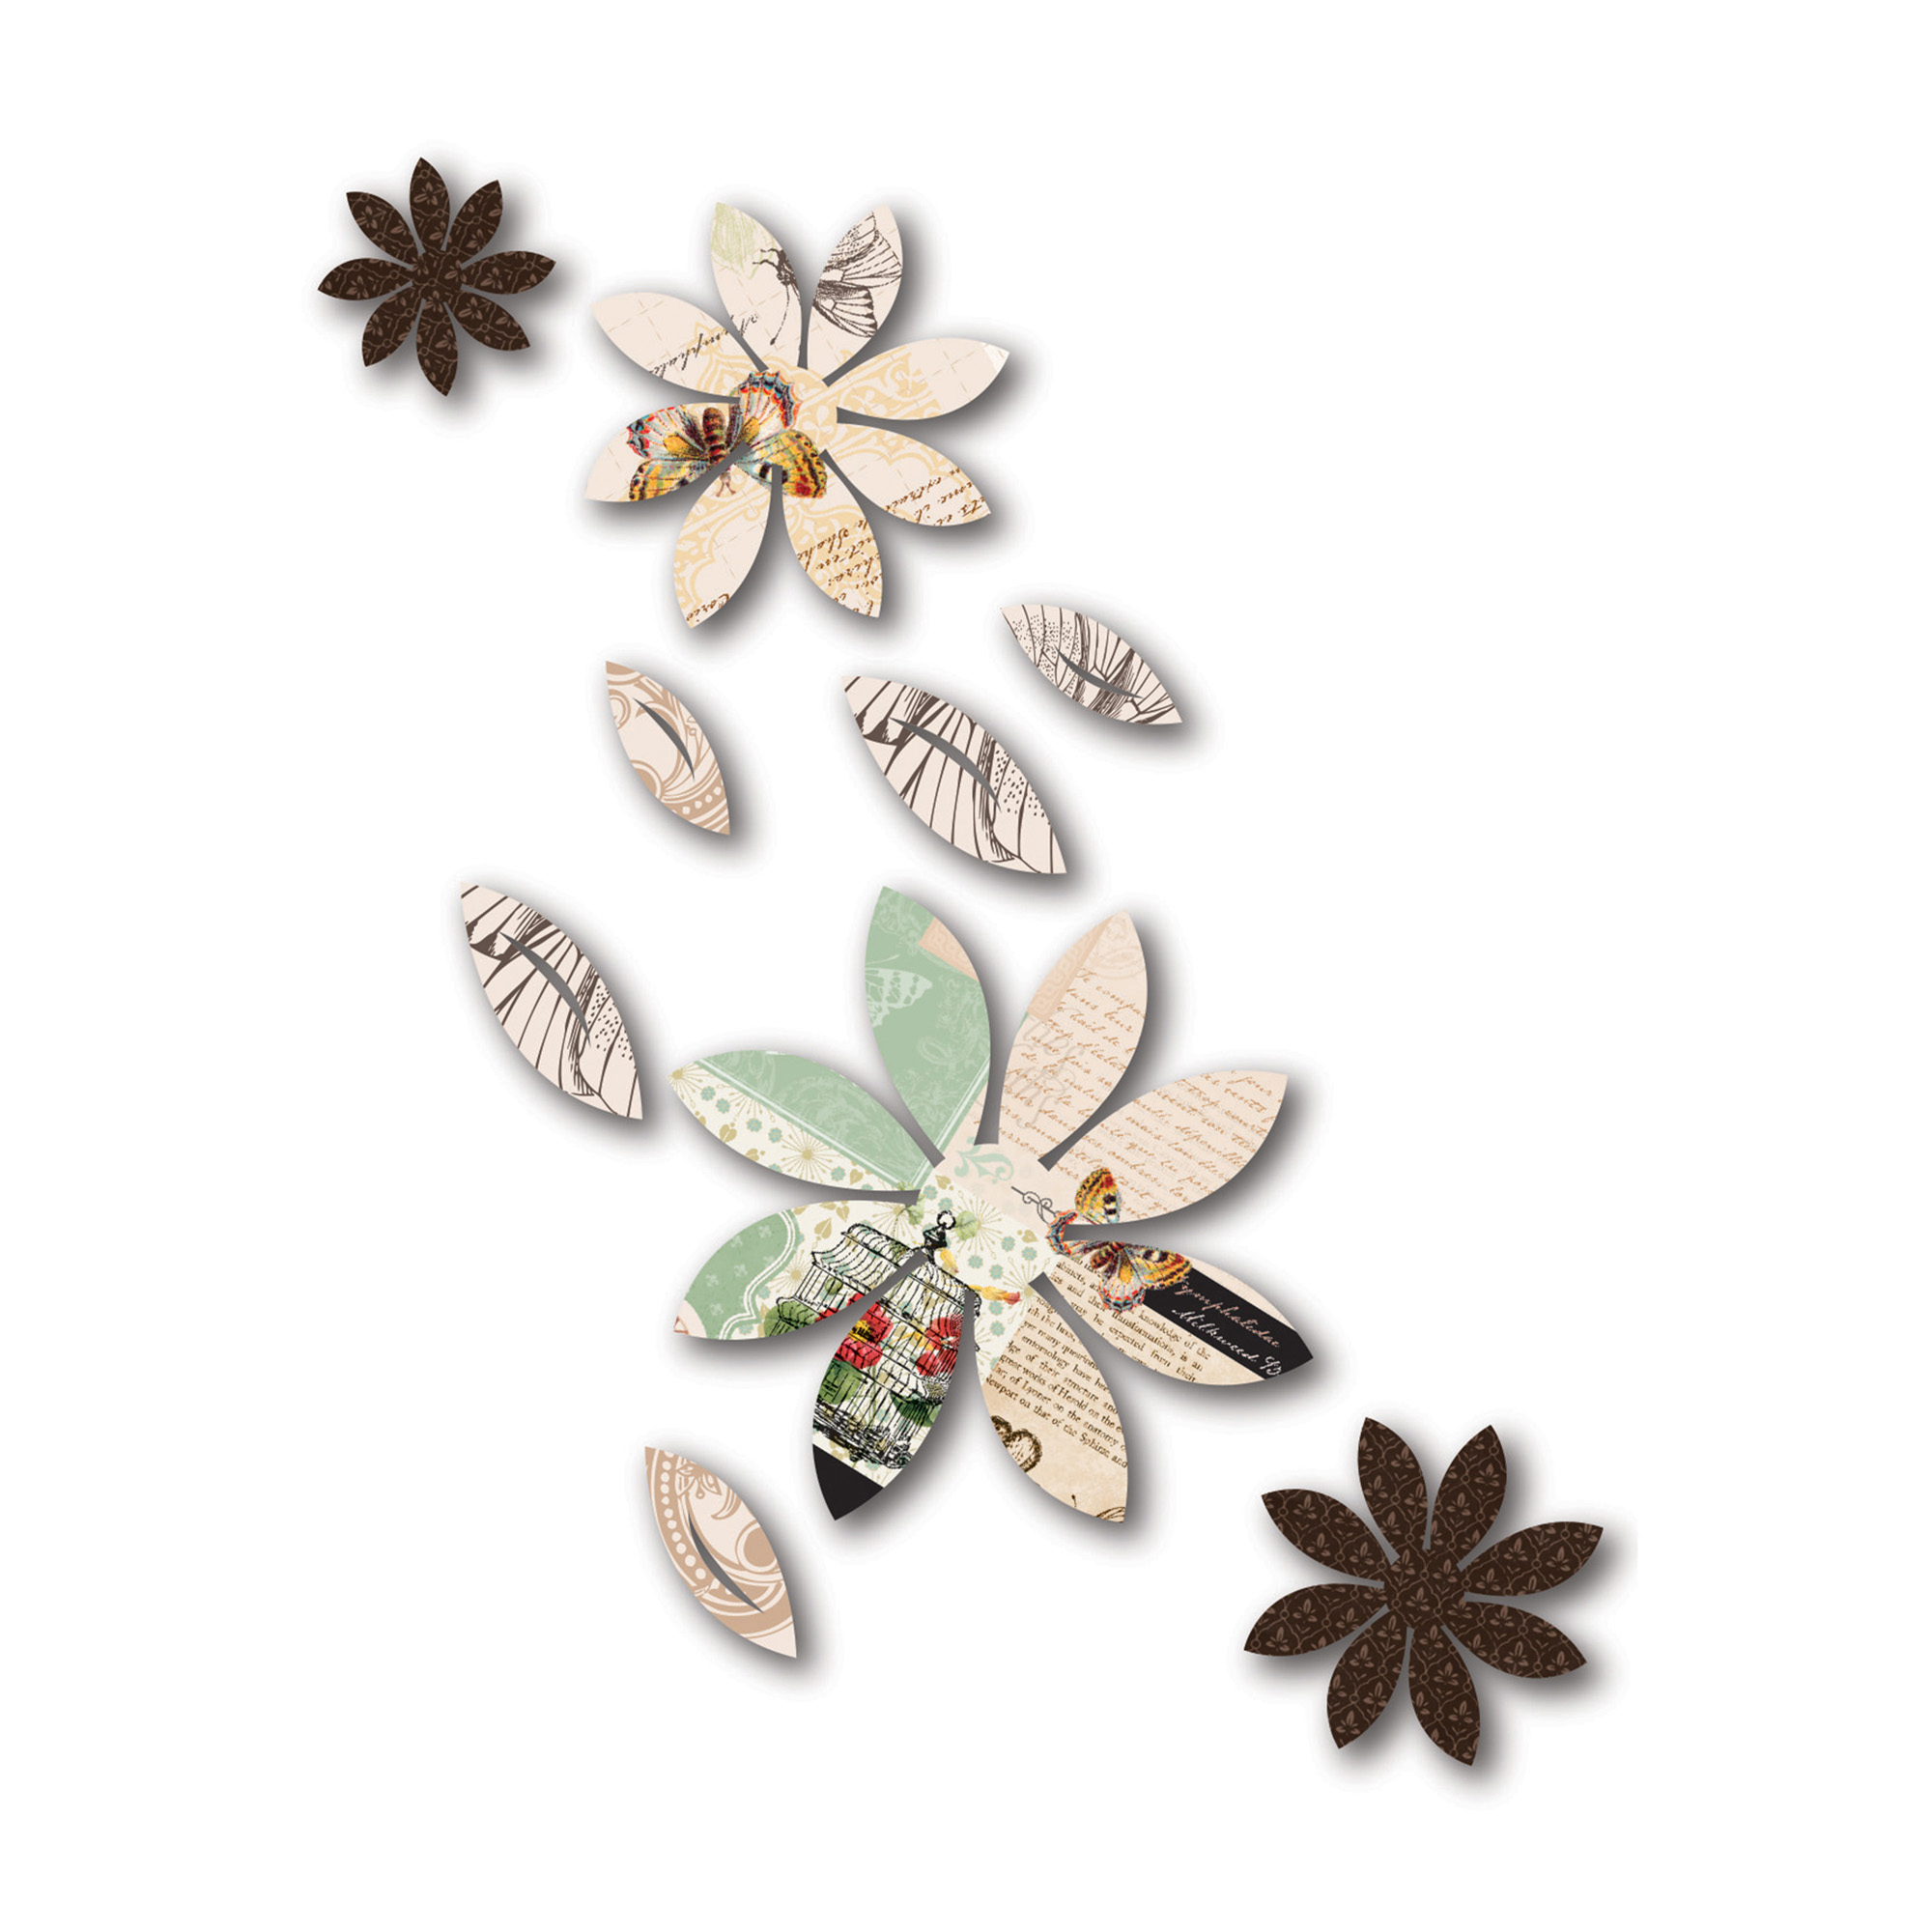 3D Wall Decor Brown Flowers With Mariposa Print, 9-Piece with regard to Mariposa 9 Piece Wall Decor (Image 4 of 30)